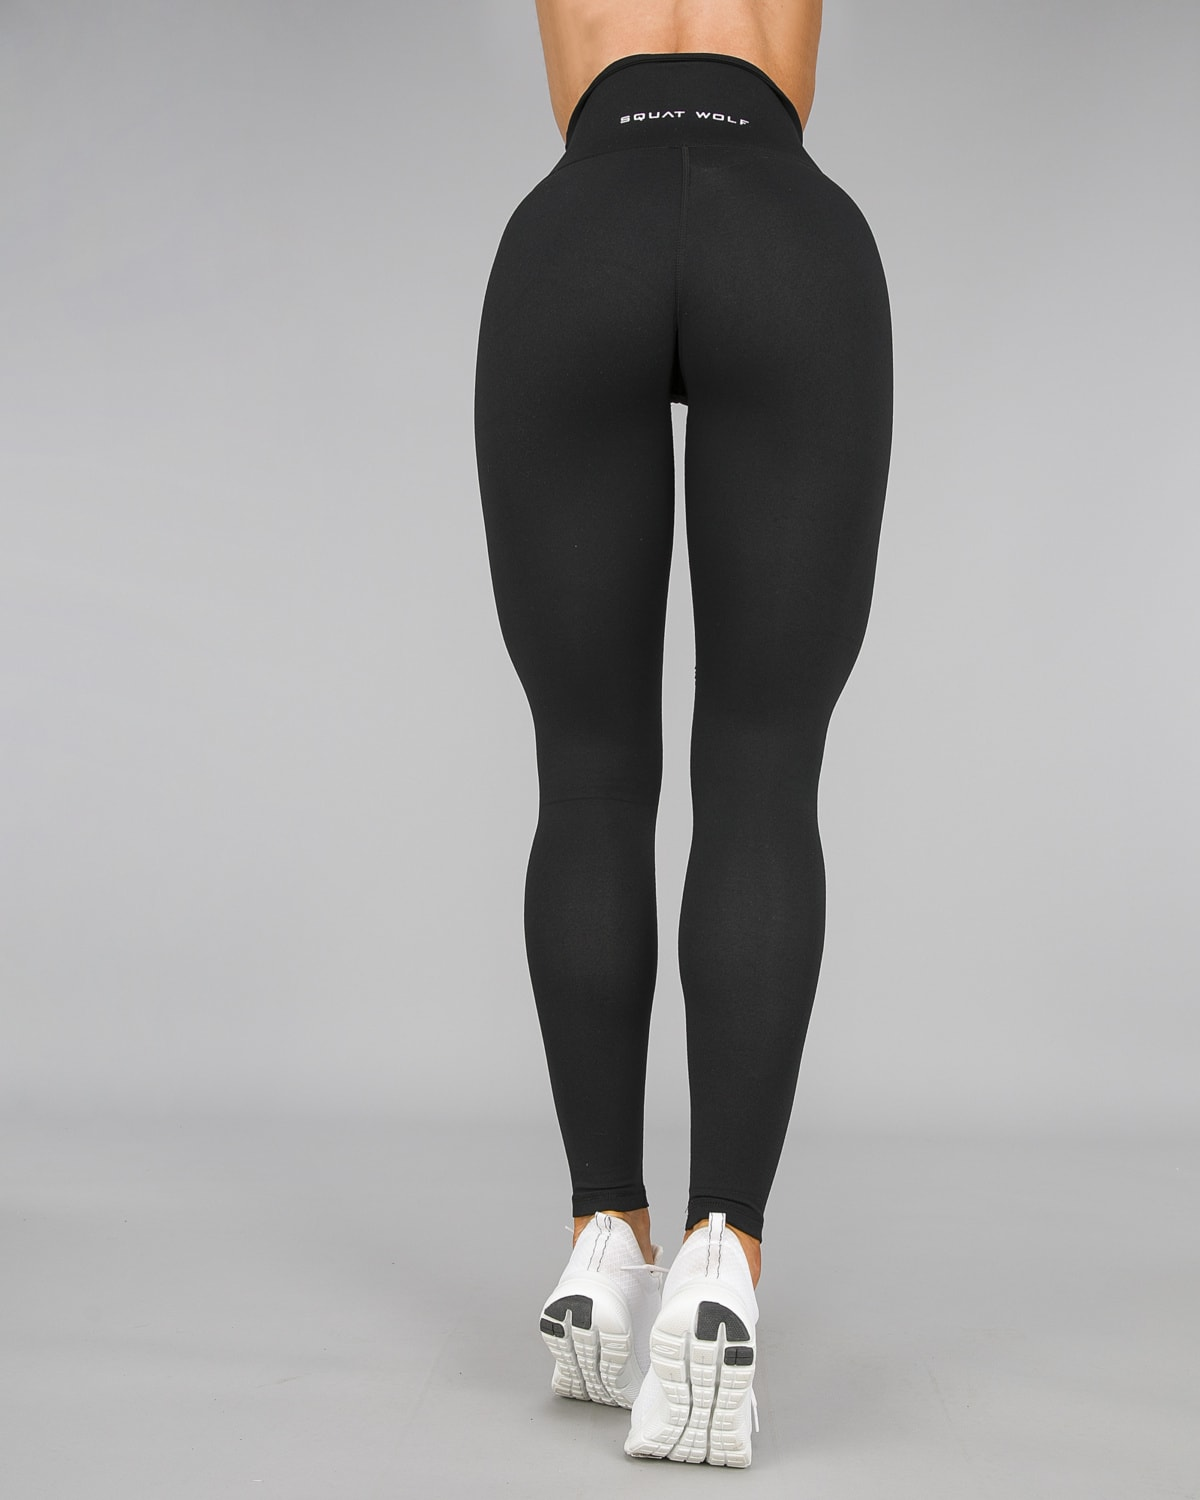 Squat Wolf – Hera Leggings – Black11